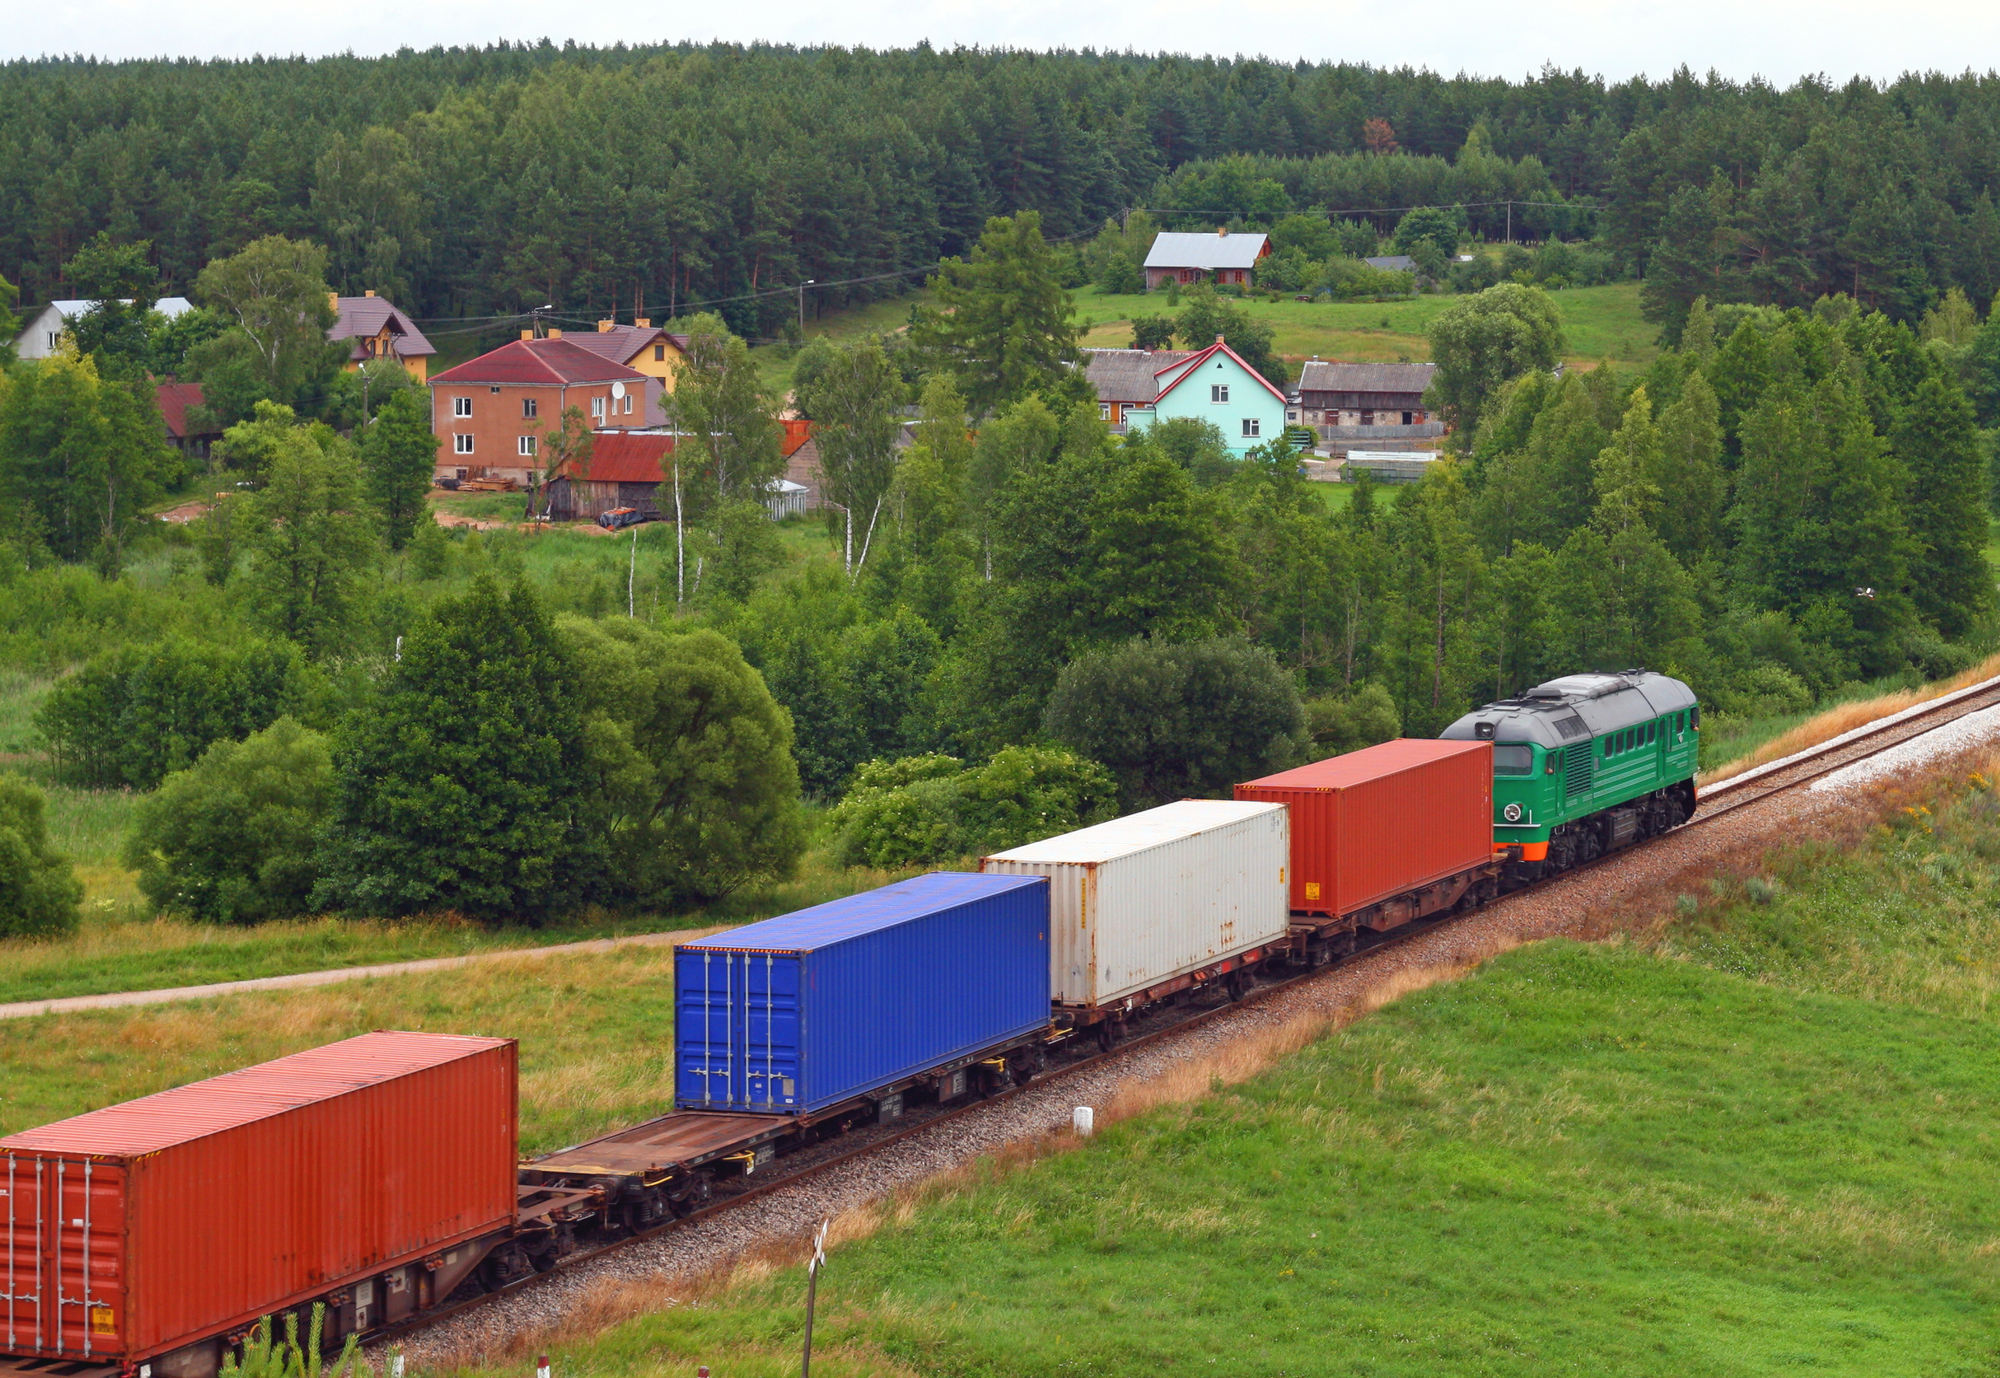 A train pulls containers across the country